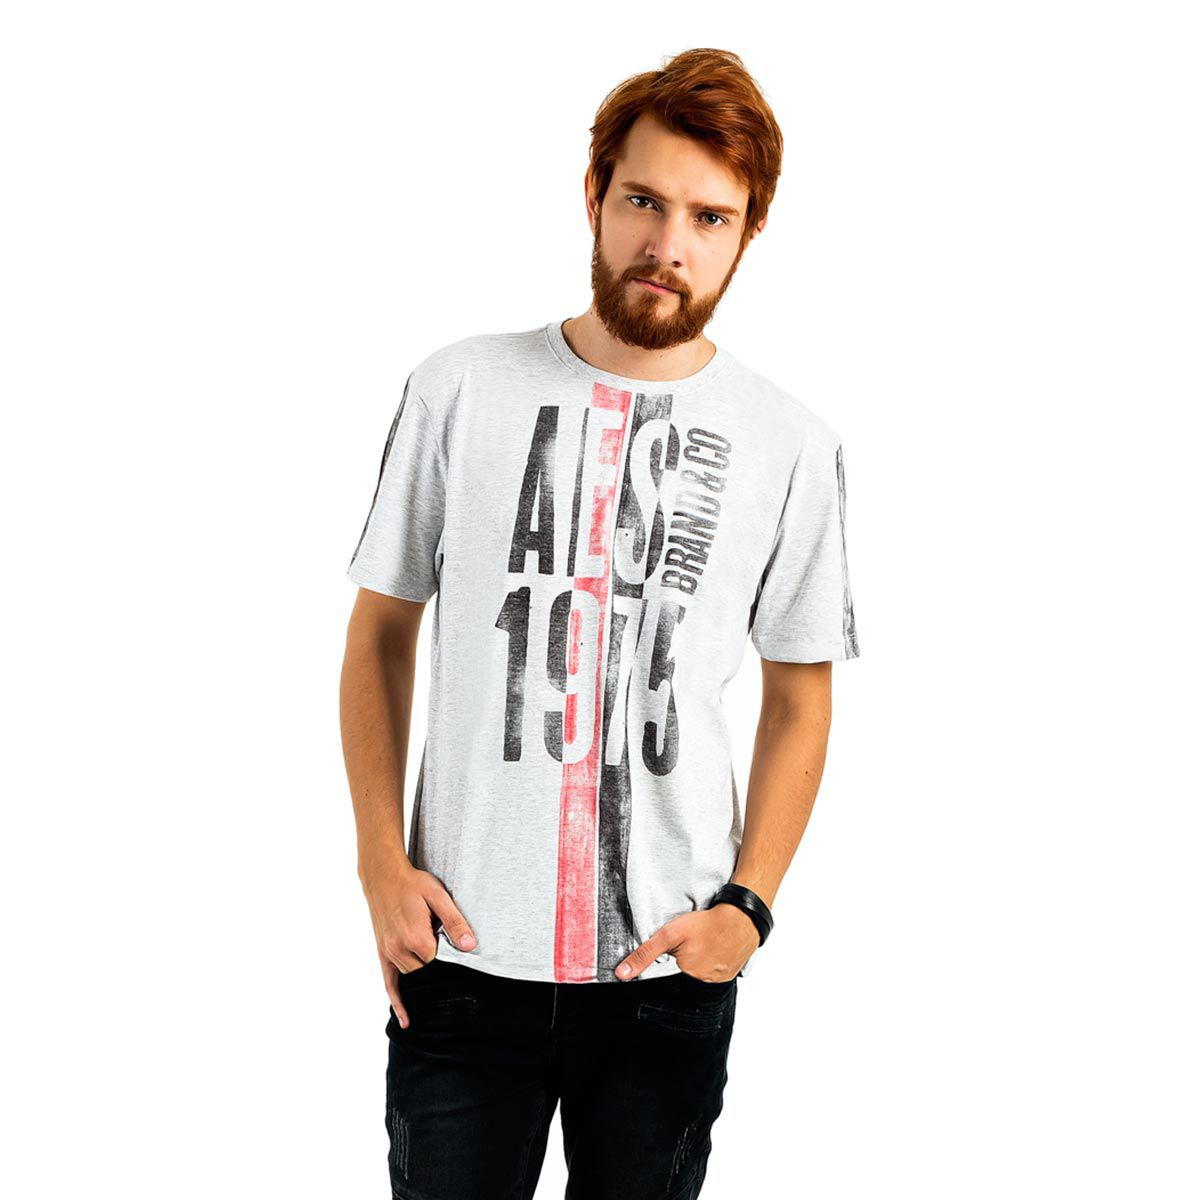 Camiseta AES 1975 Fashion